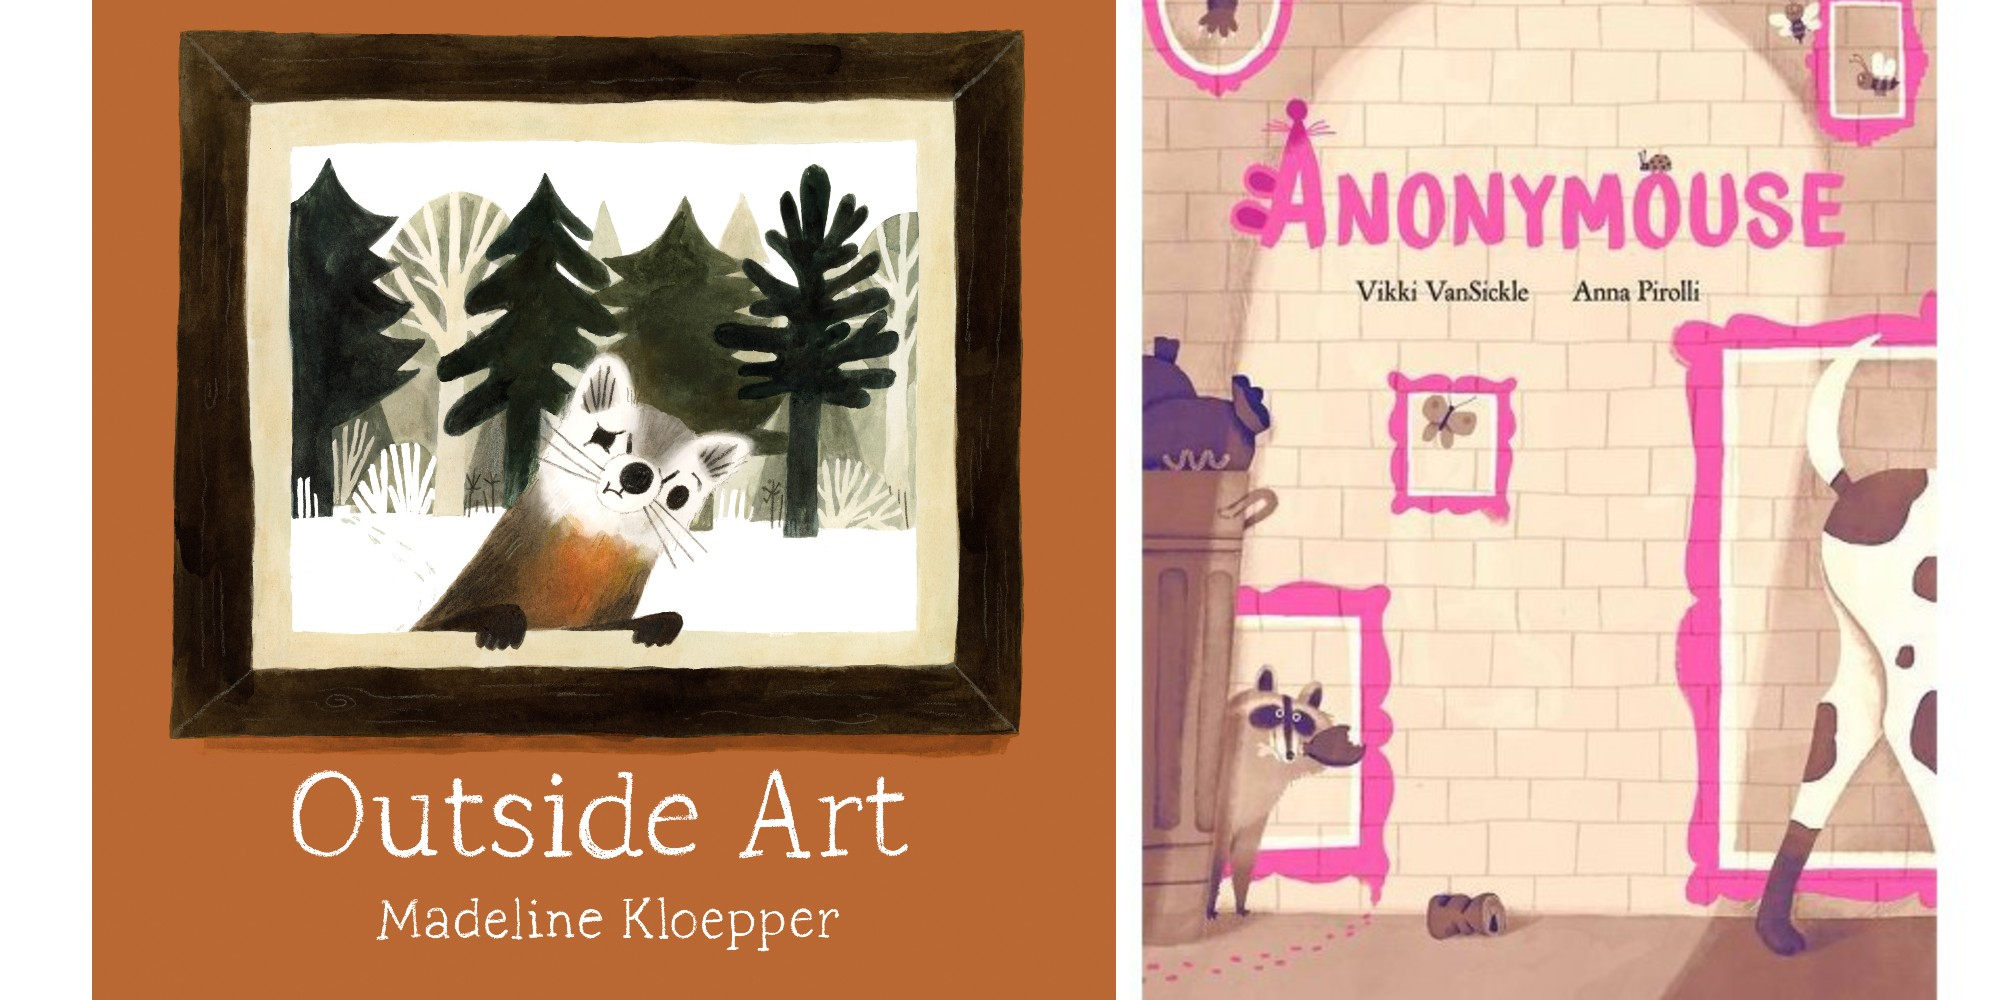 Covers for Outside Art and Anonymouse